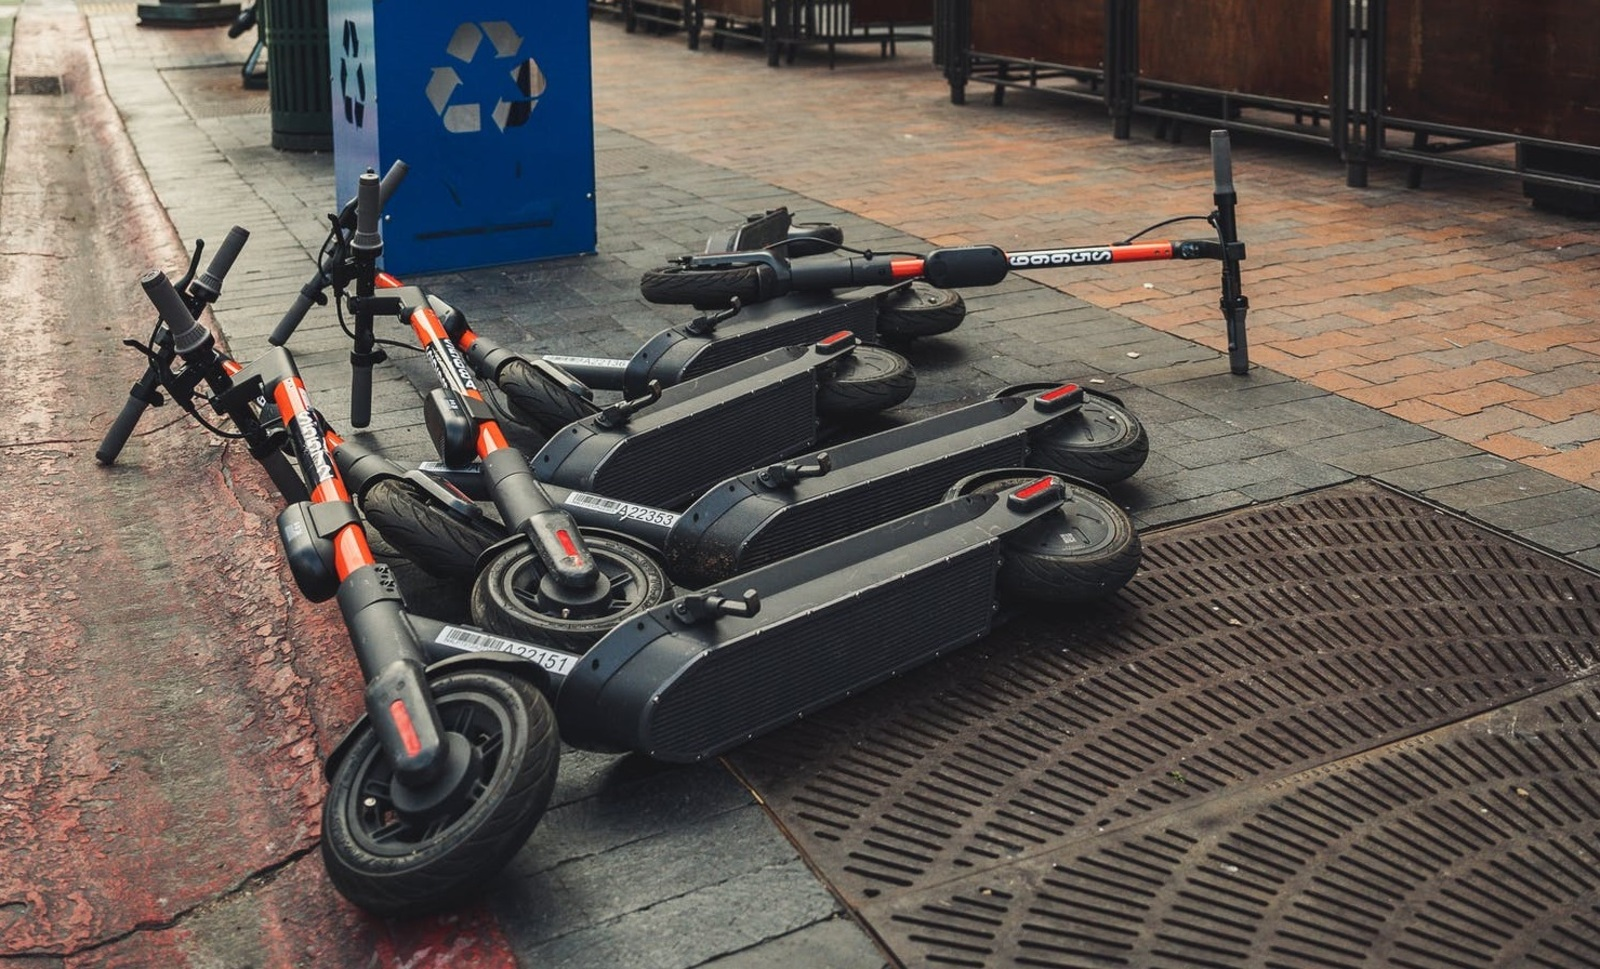 Electric Bikes and Scooters Legalized in New York City - electric-scooters-pexels-photo-4054460